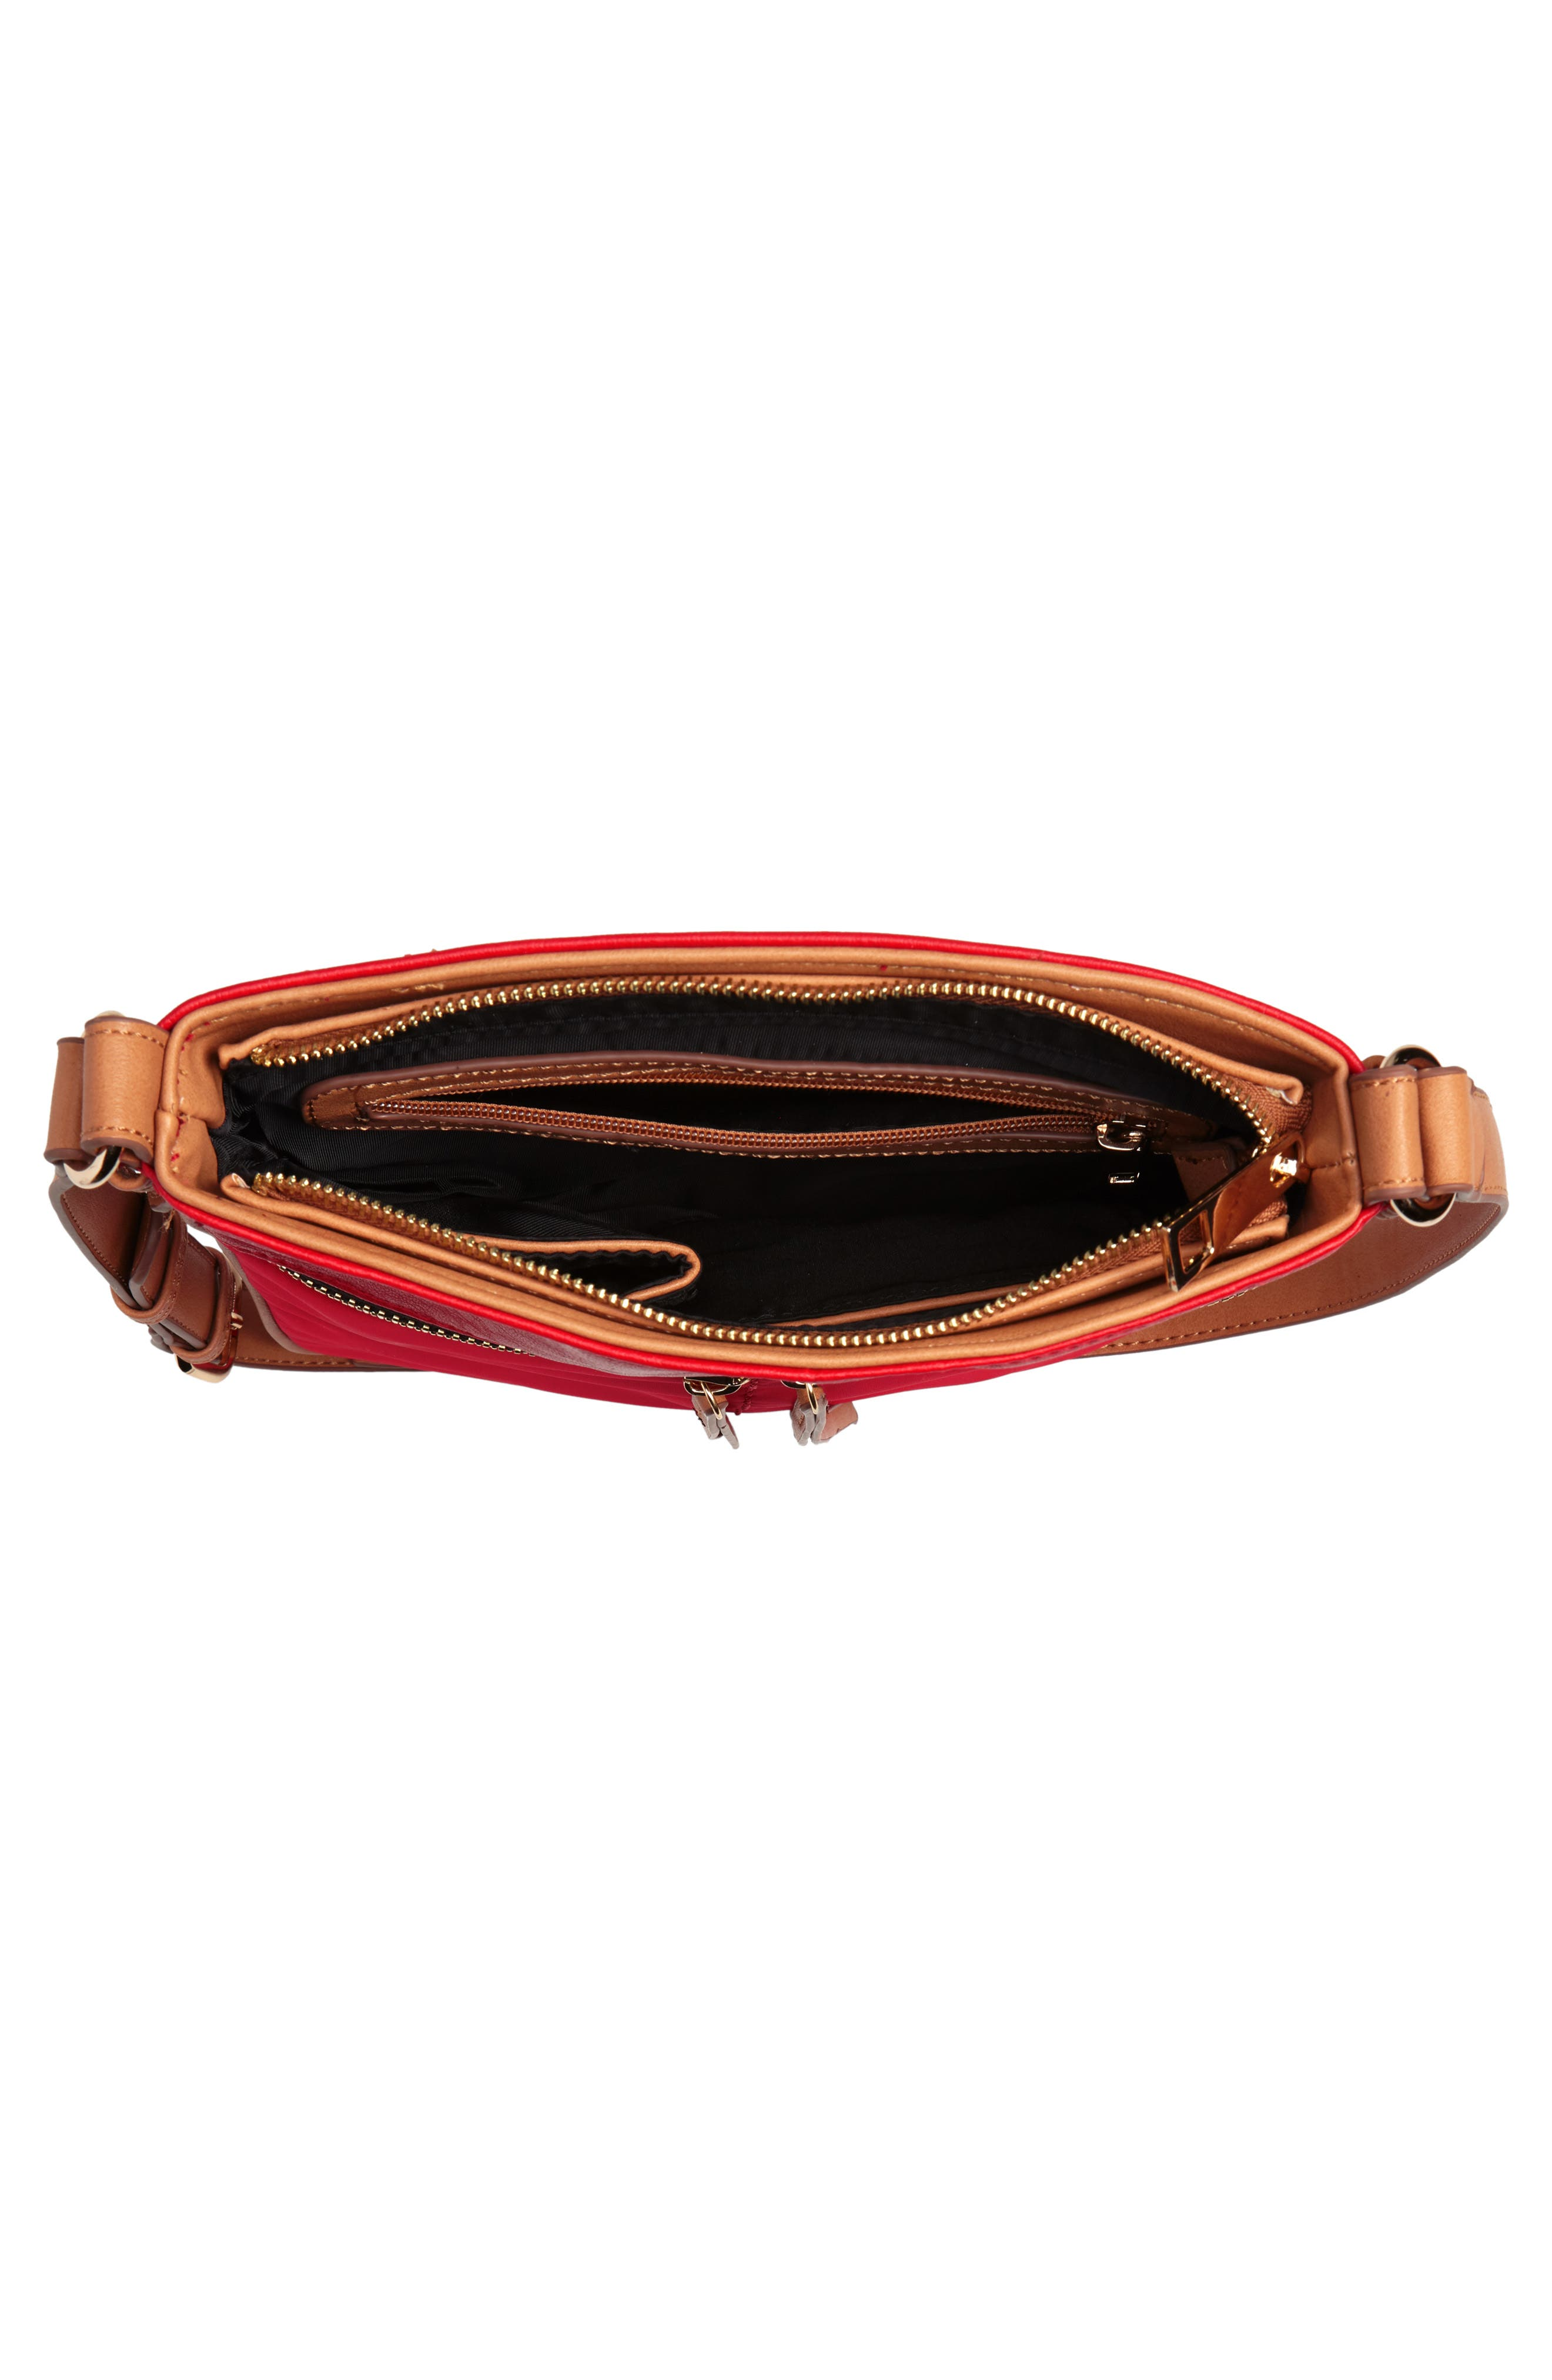 Nylon & Faux Leather Crossbody Bag,                             Alternate thumbnail 4, color,                             Red